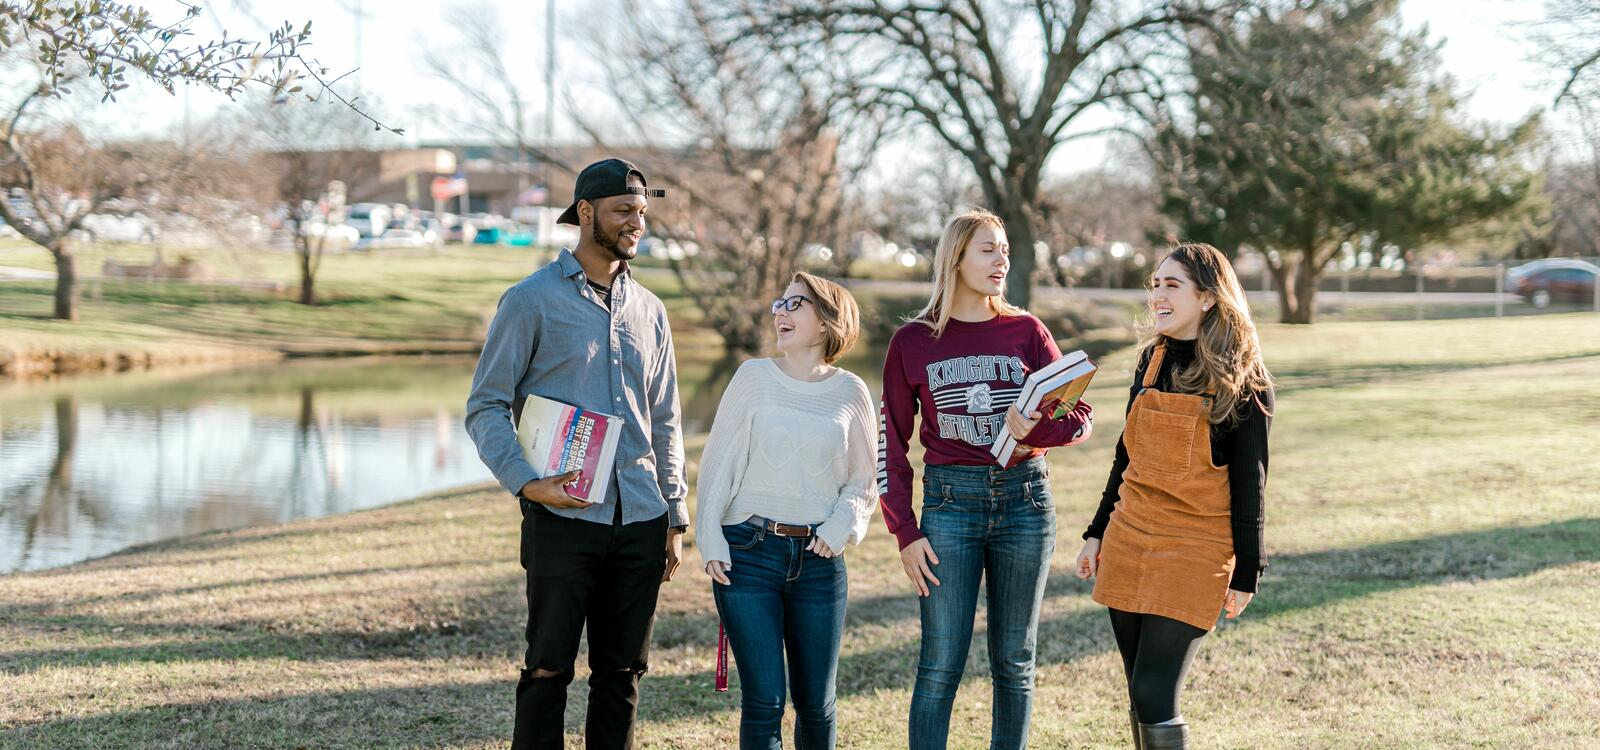 Four students, two with books in hand, laugh as they talk and stand in front of the duck pond.